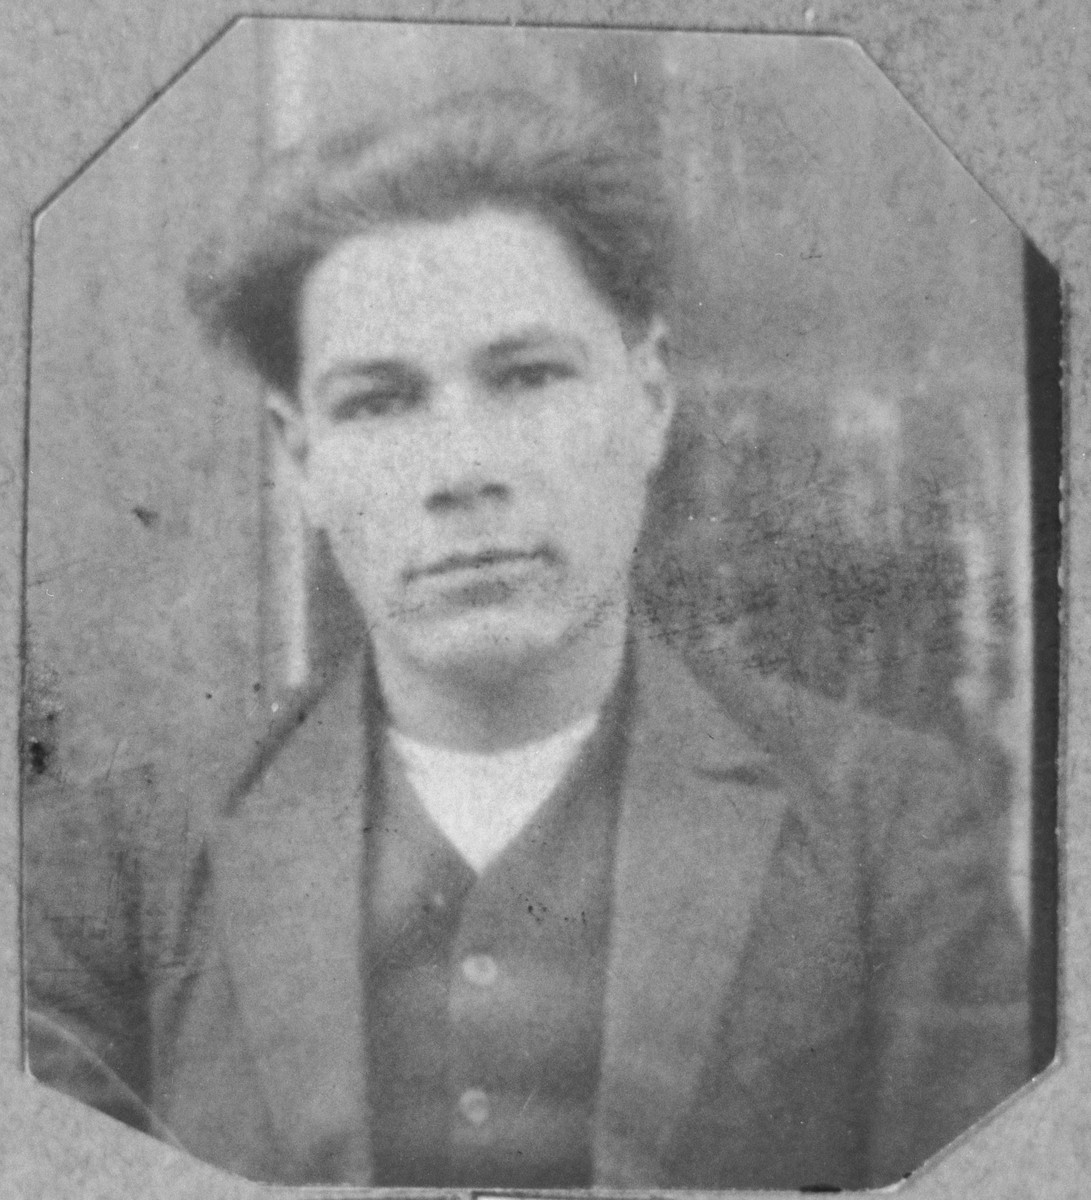 Portrait of Avram Koen.  He was a tailor.  He lived at Yakshitseva 22a in Bitola.